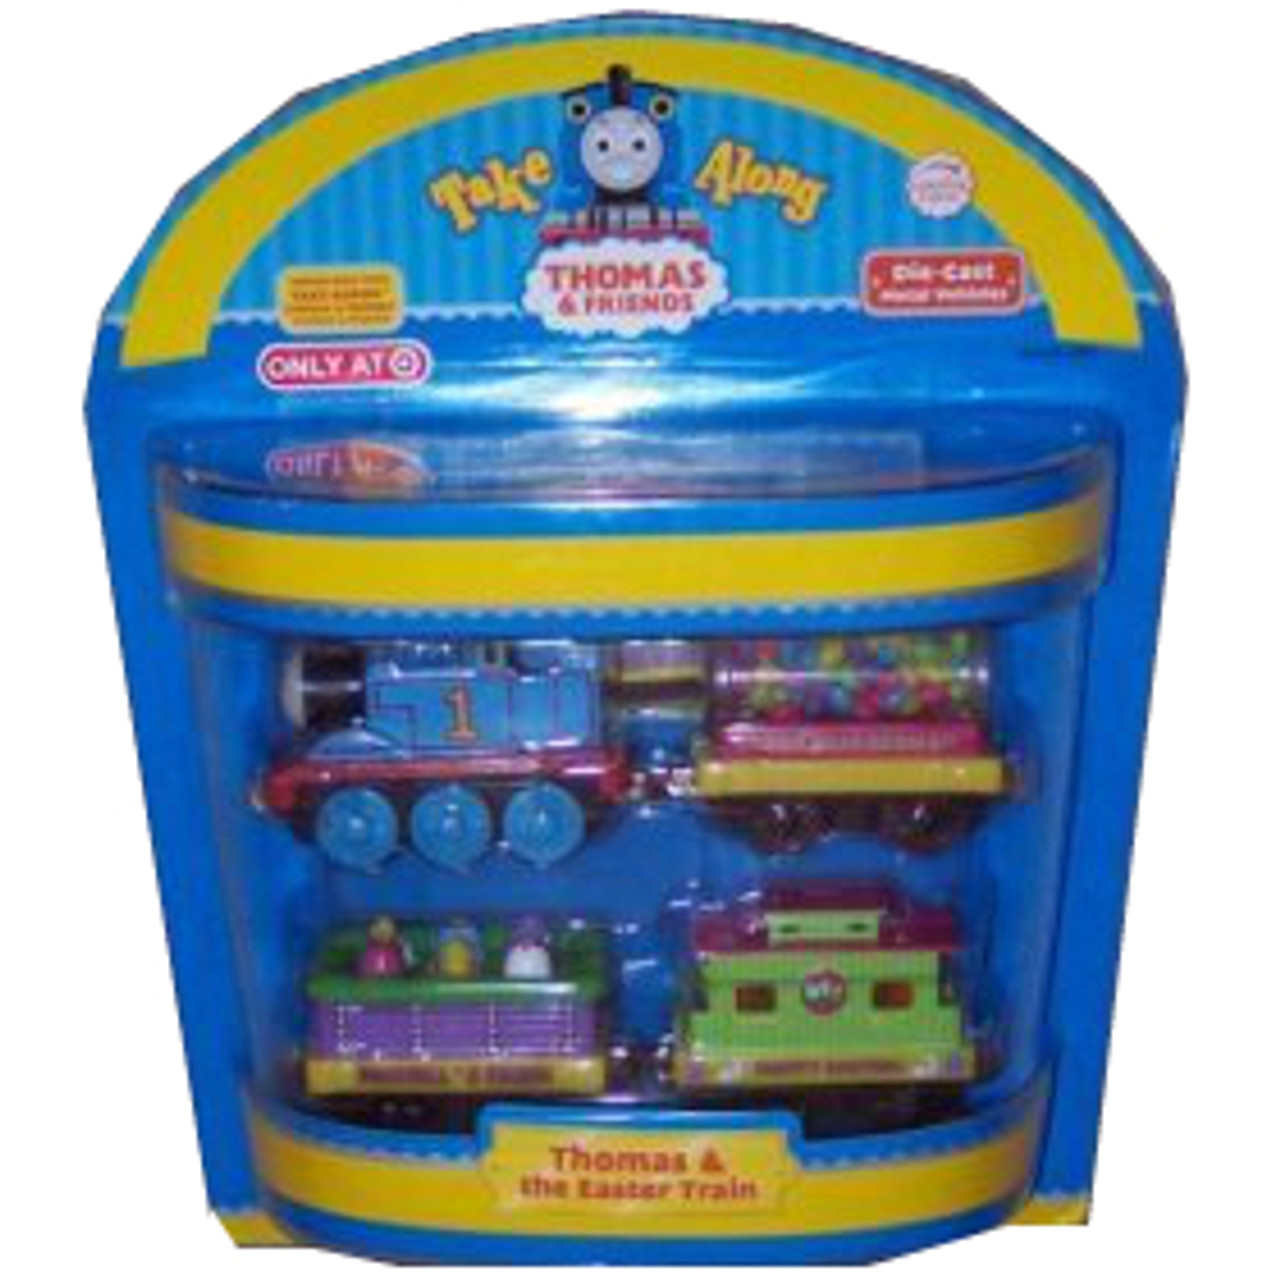 Thomas & Friends Take Along Thomas & The Easter Train Train Set